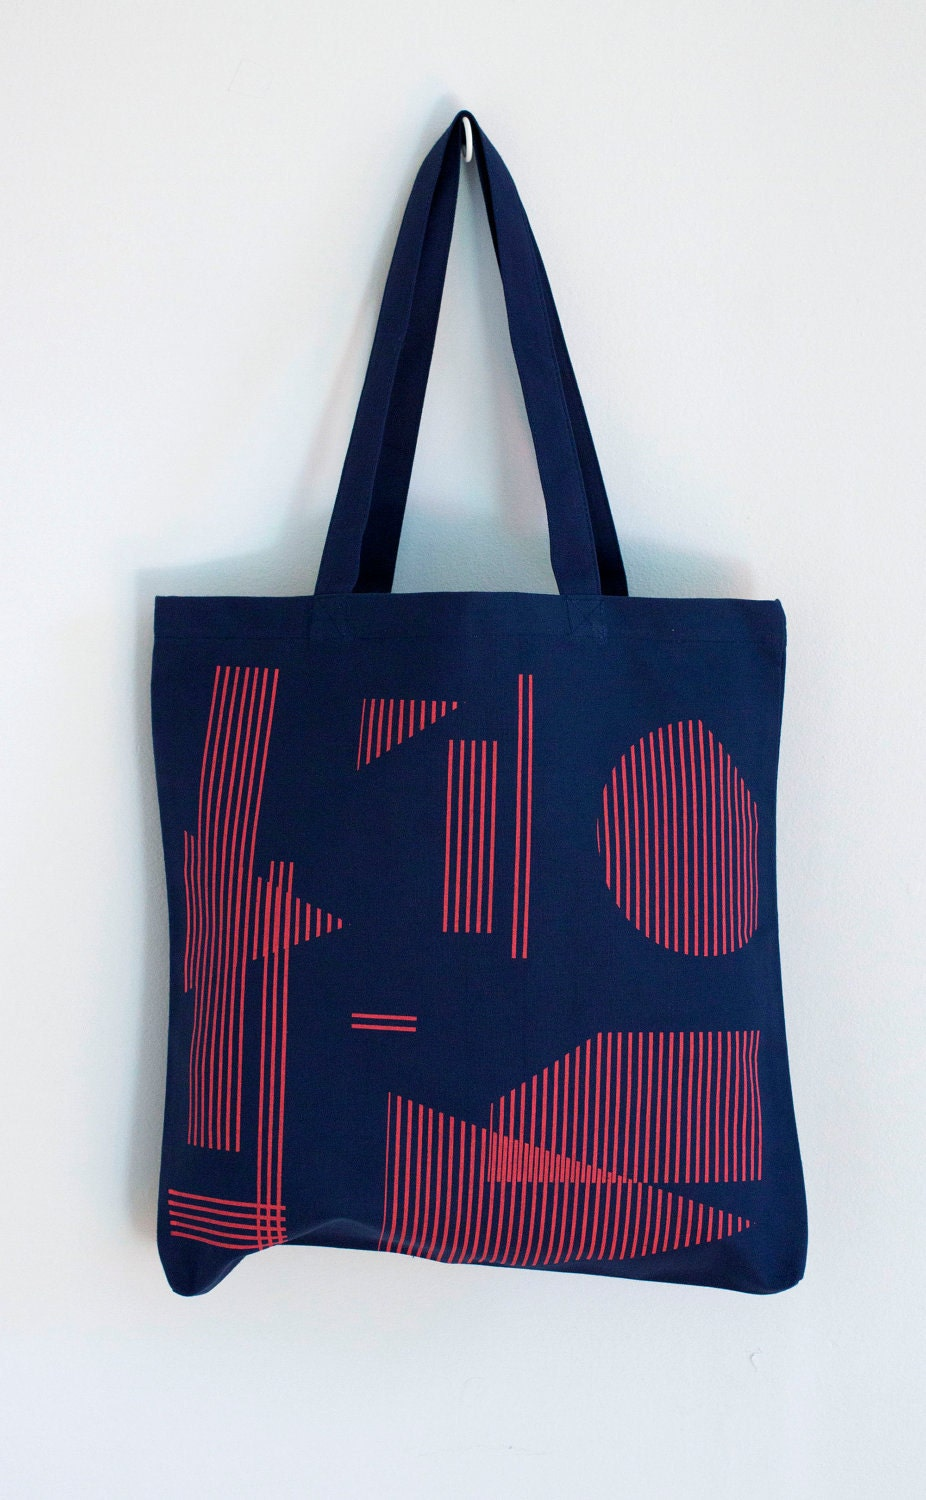 Floating Shapes tote in red on navy blue